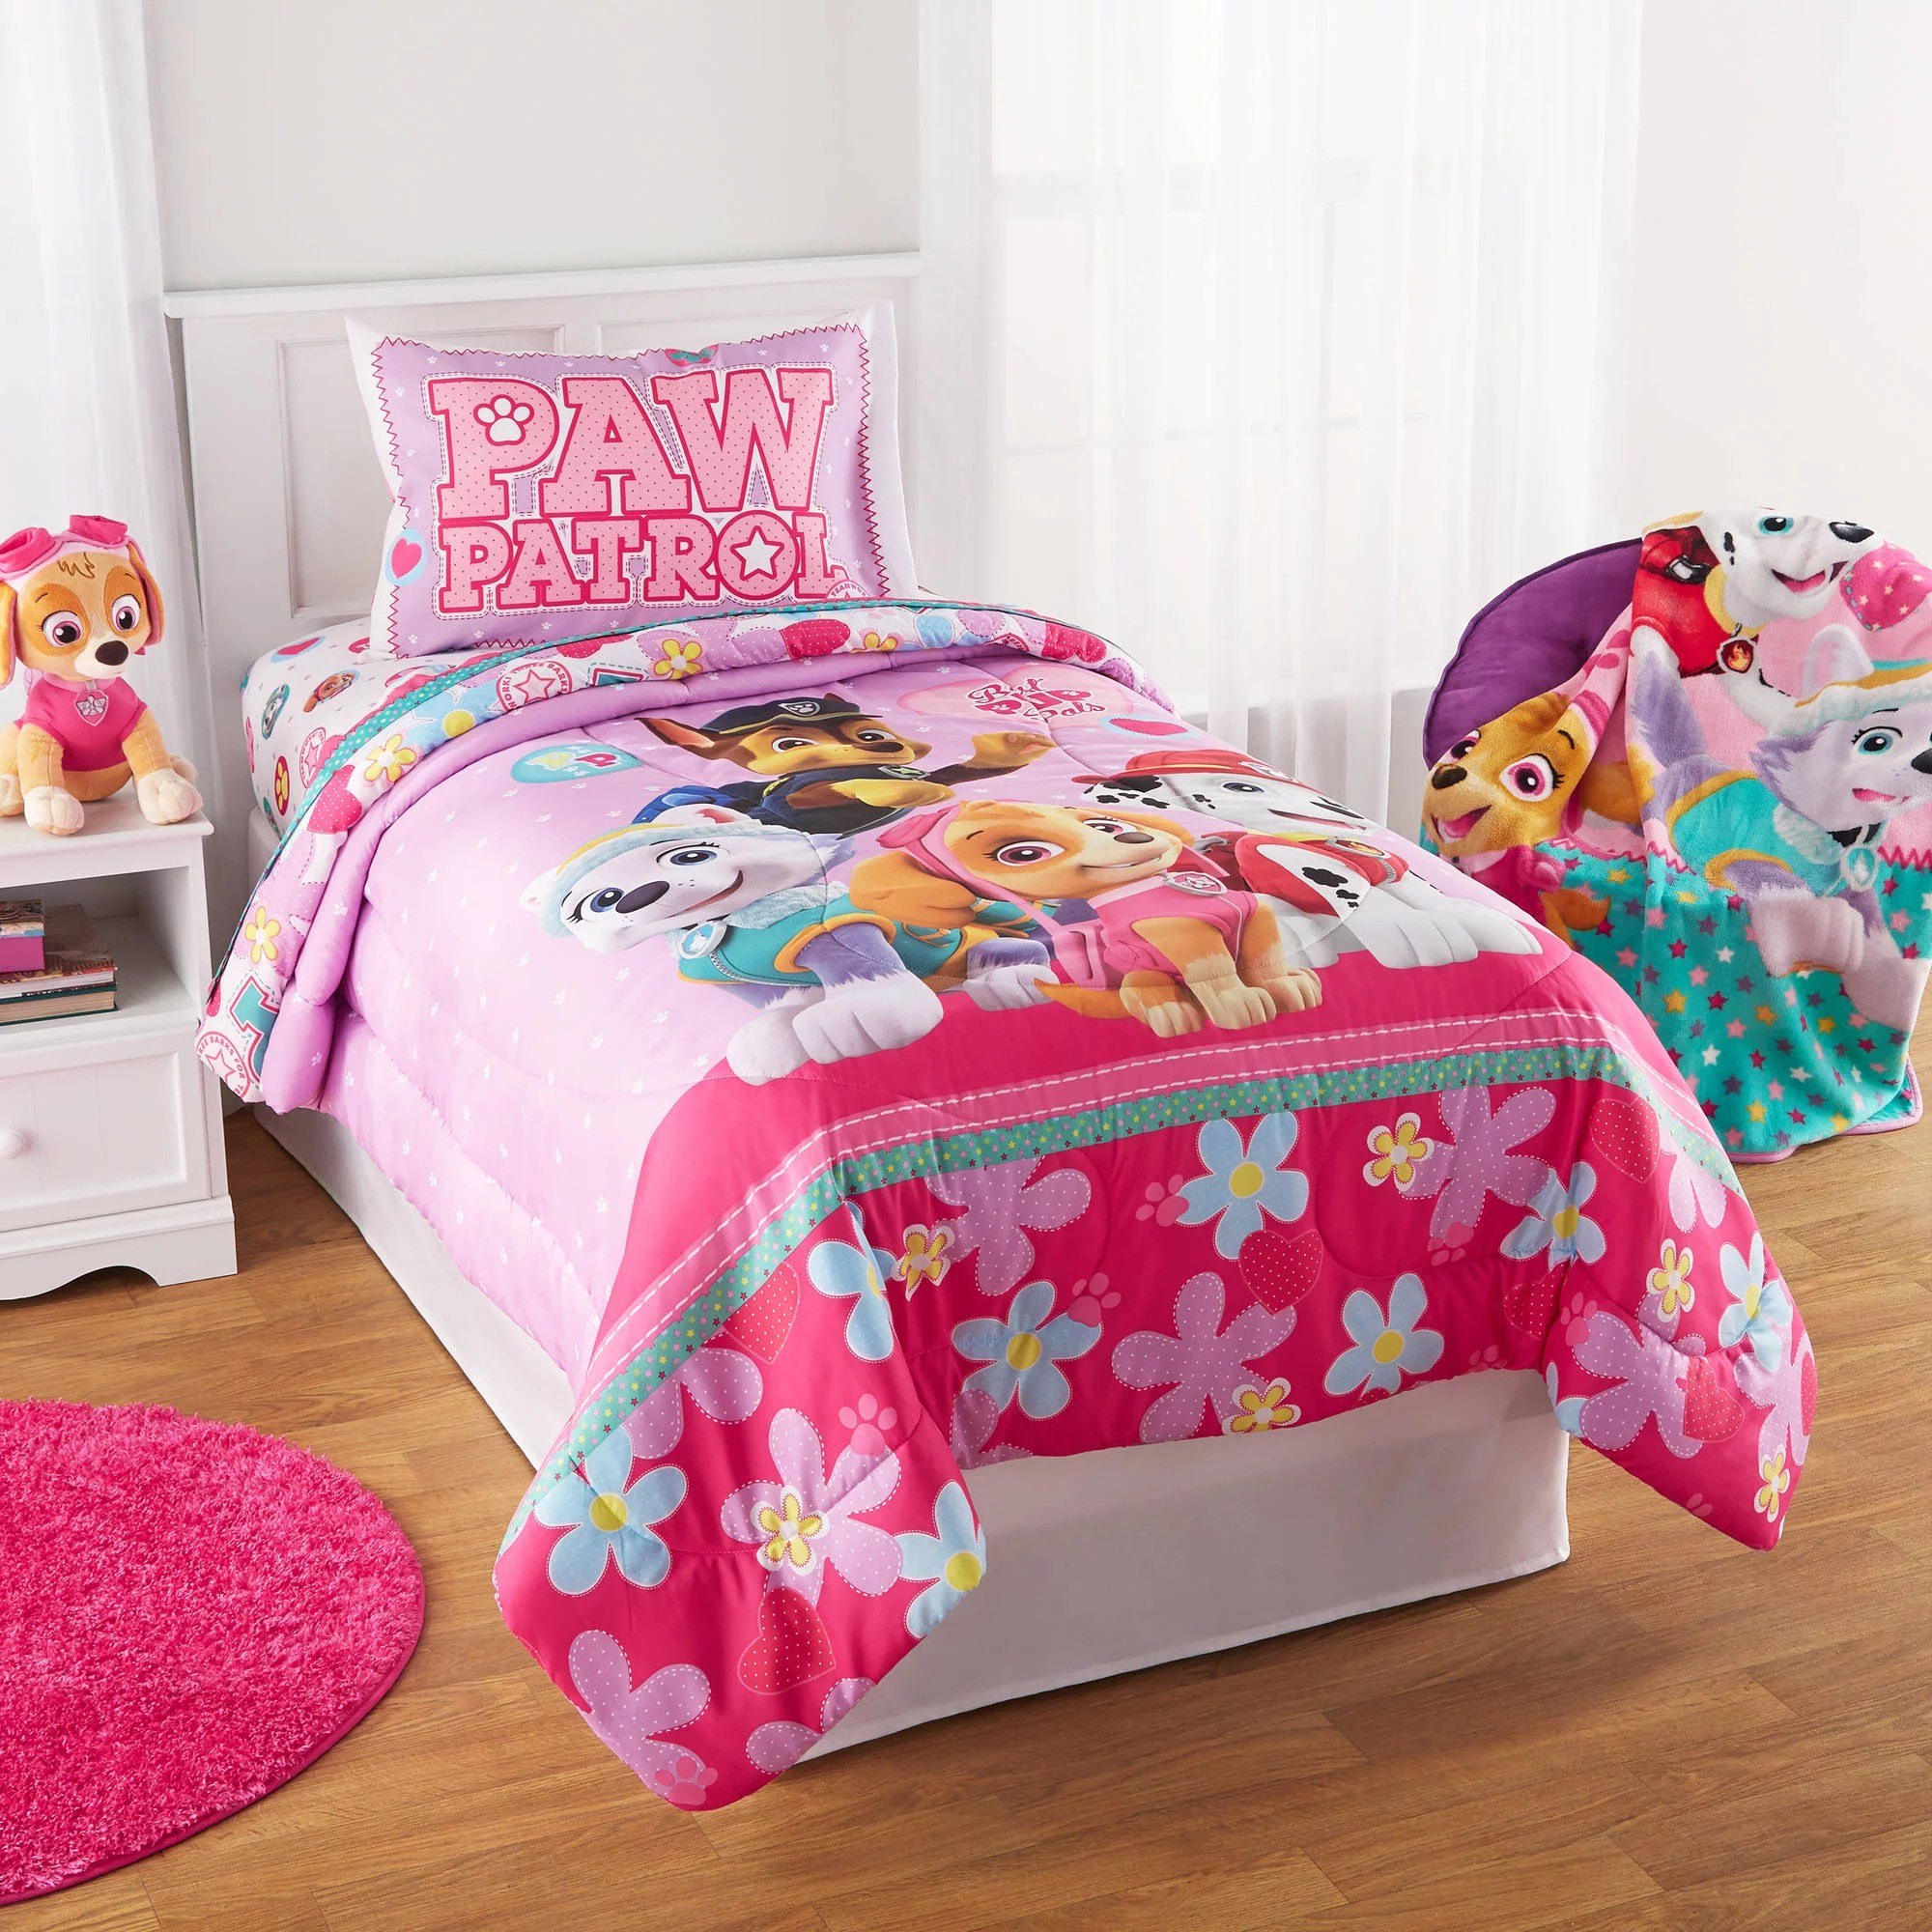 Boys Double Quilt Cover Paw Patrol Girl Best Pup Reversible Twin Or Full Comforter 1 Each